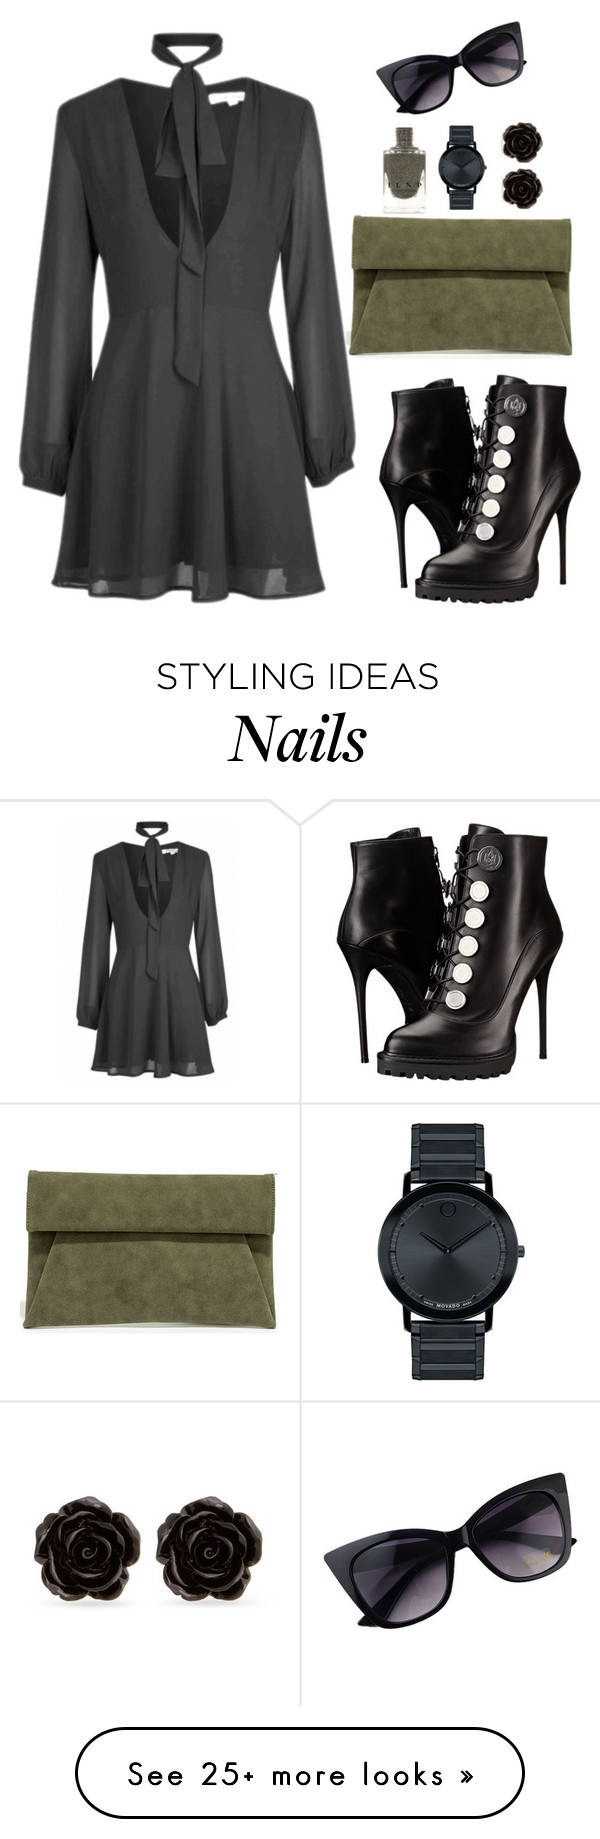 """""""Untitled #367"""" by hayleyl22 on Polyvore featuring Alexander McQueen, LULUS, Movado and Erica Lyons"""